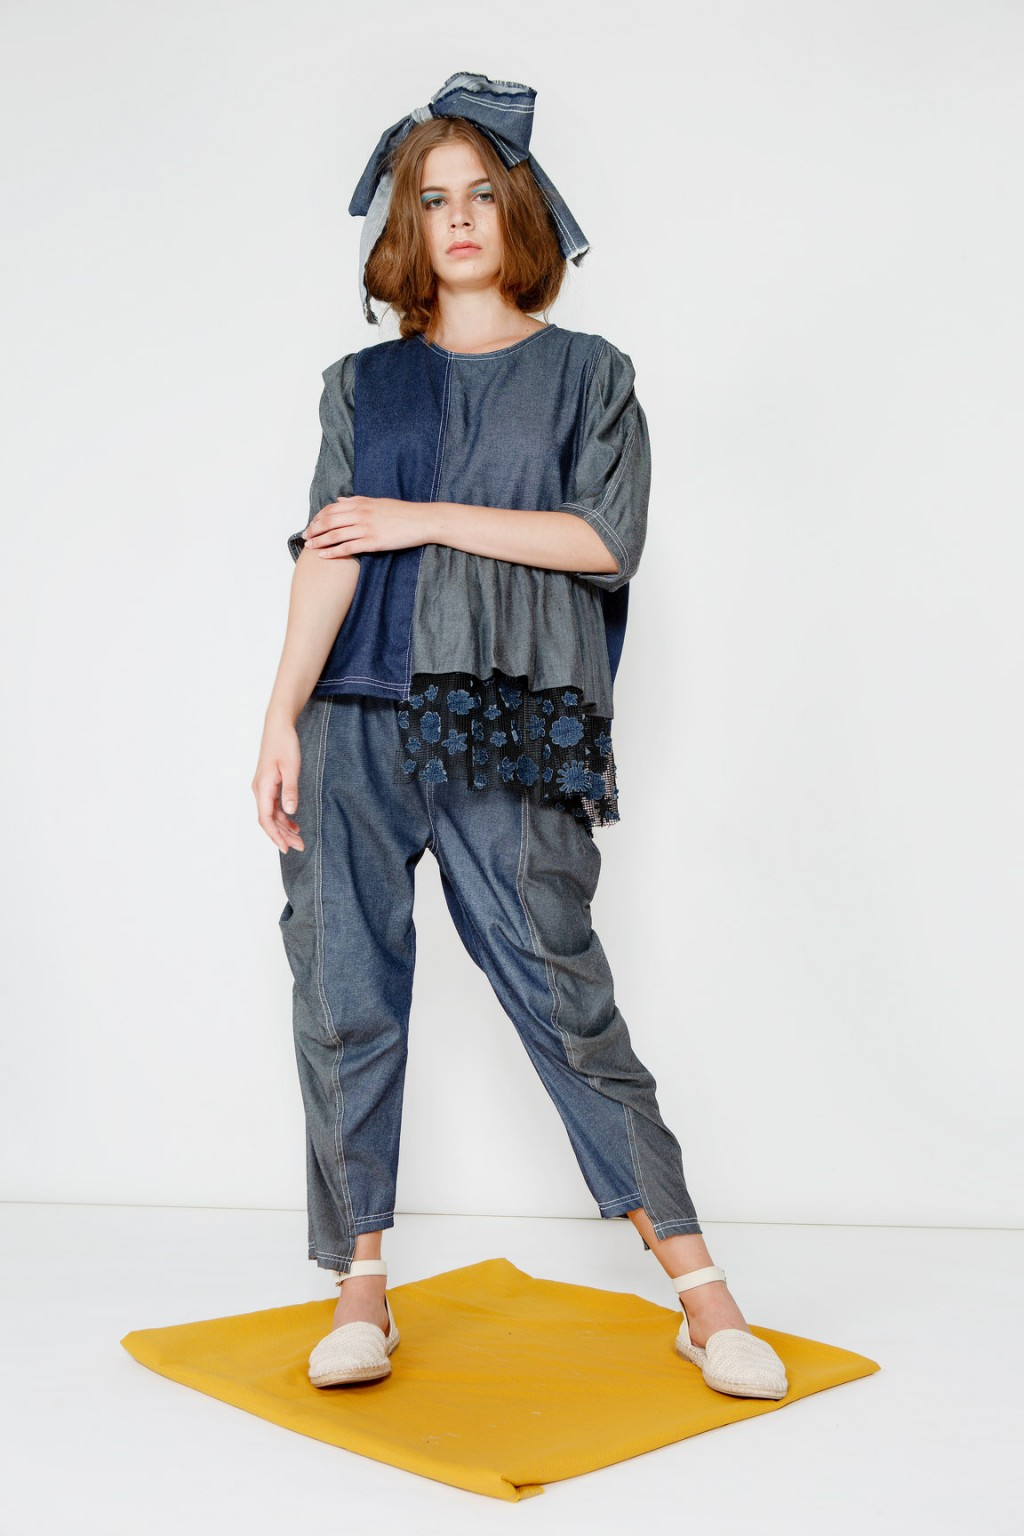 LAILA TOP DARK BLUE/ GREY